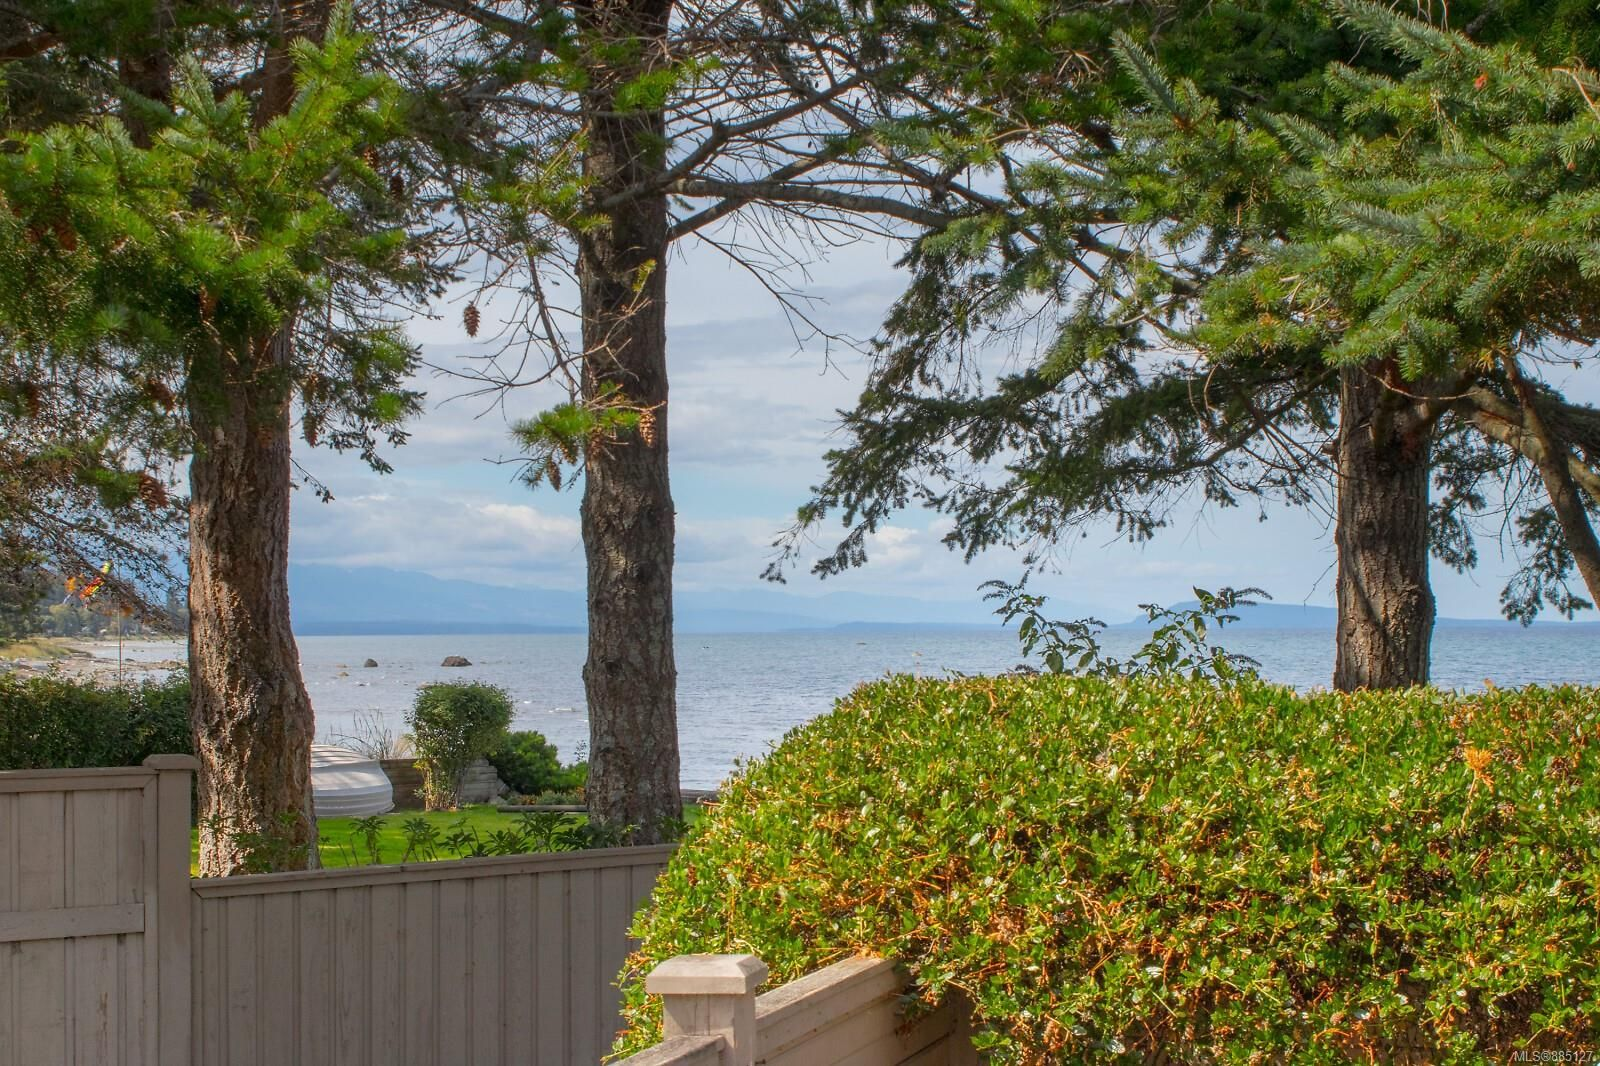 Photo 15: Photos: 26 529 Johnstone Rd in : PQ French Creek Row/Townhouse for sale (Parksville/Qualicum)  : MLS®# 885127